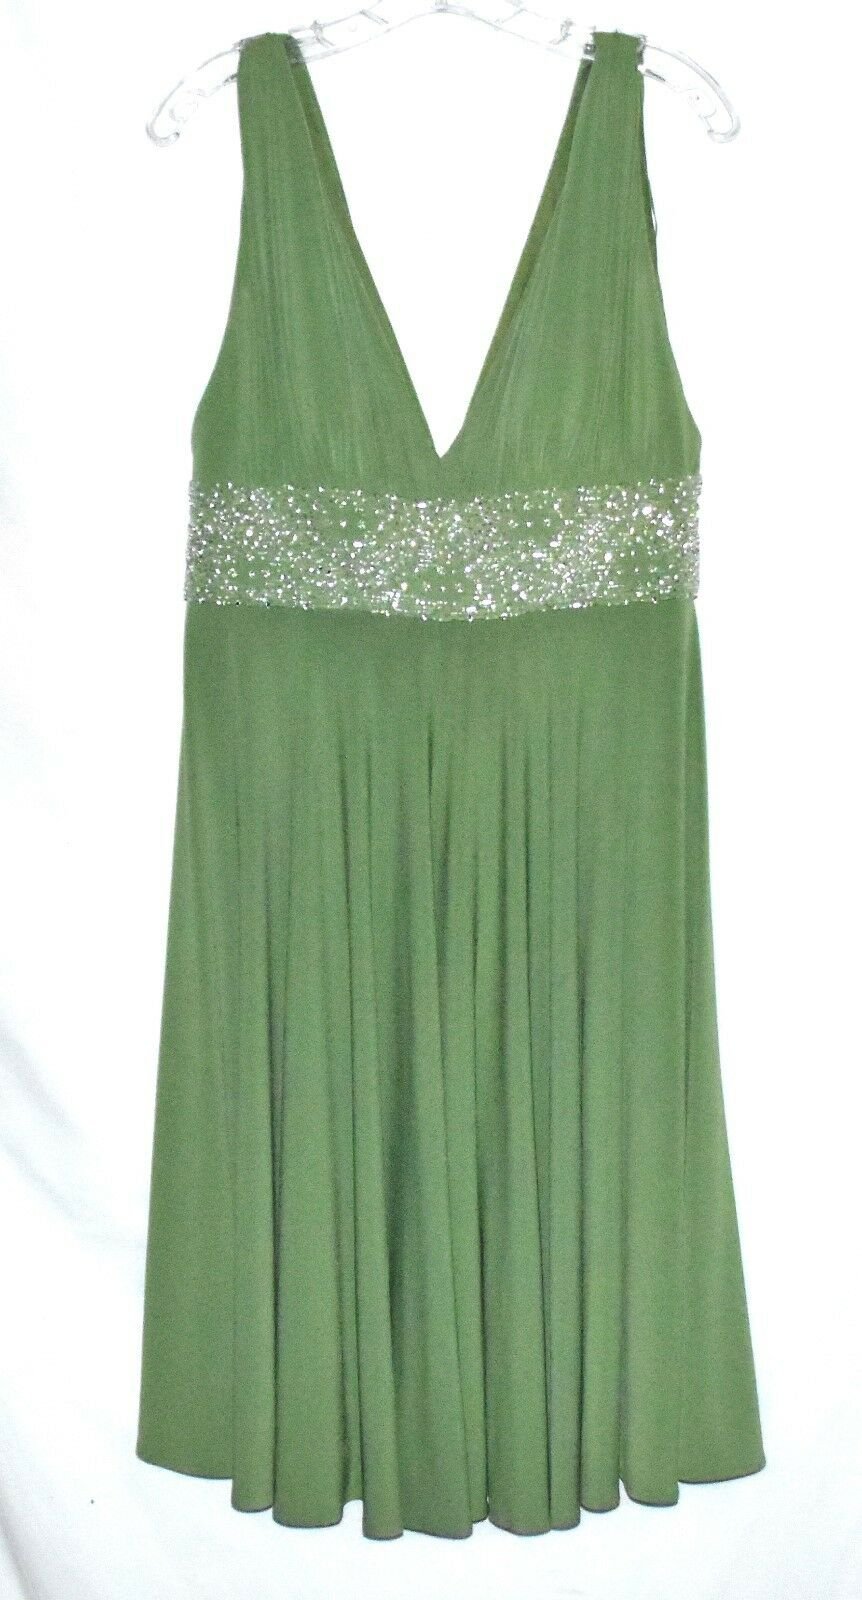 JS Collections Lime Green Beaded Empire Waist with Bra Insert Party Dress Sz 10